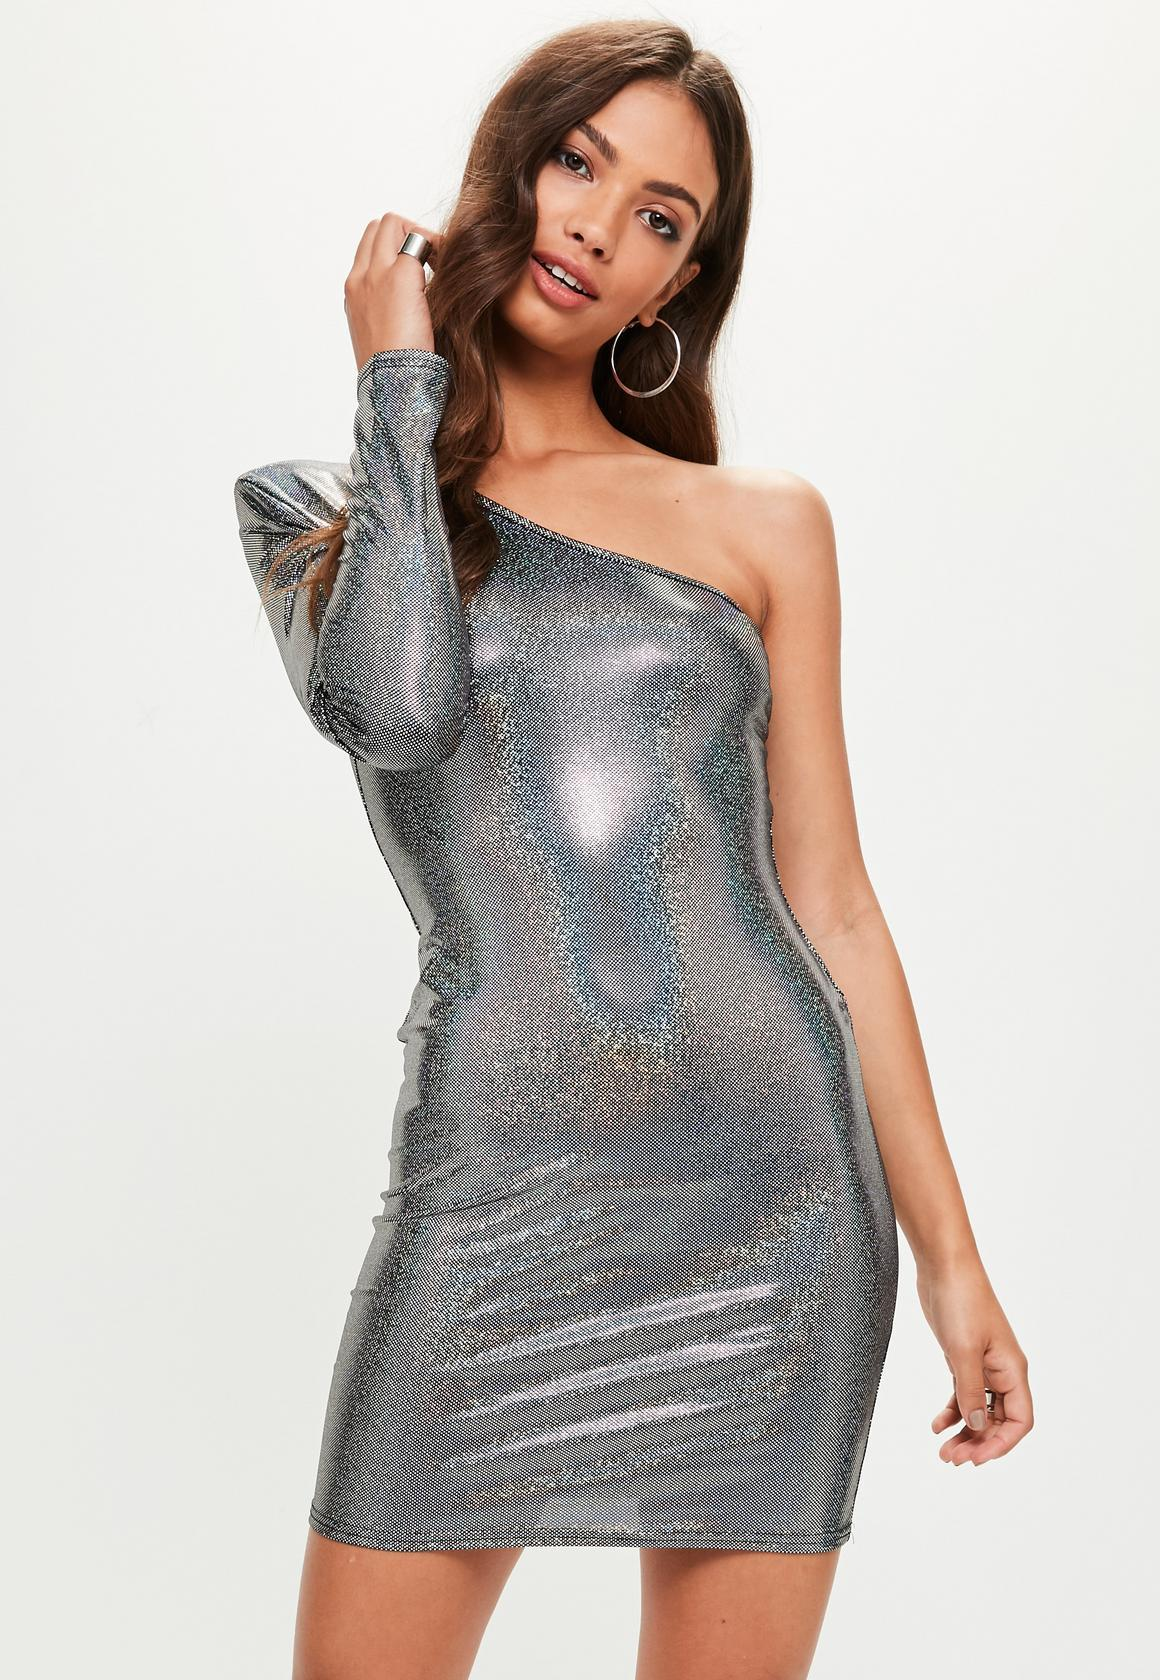 【海外限定】Missguided人気ドレス☆Silver One Shoulder Hologr